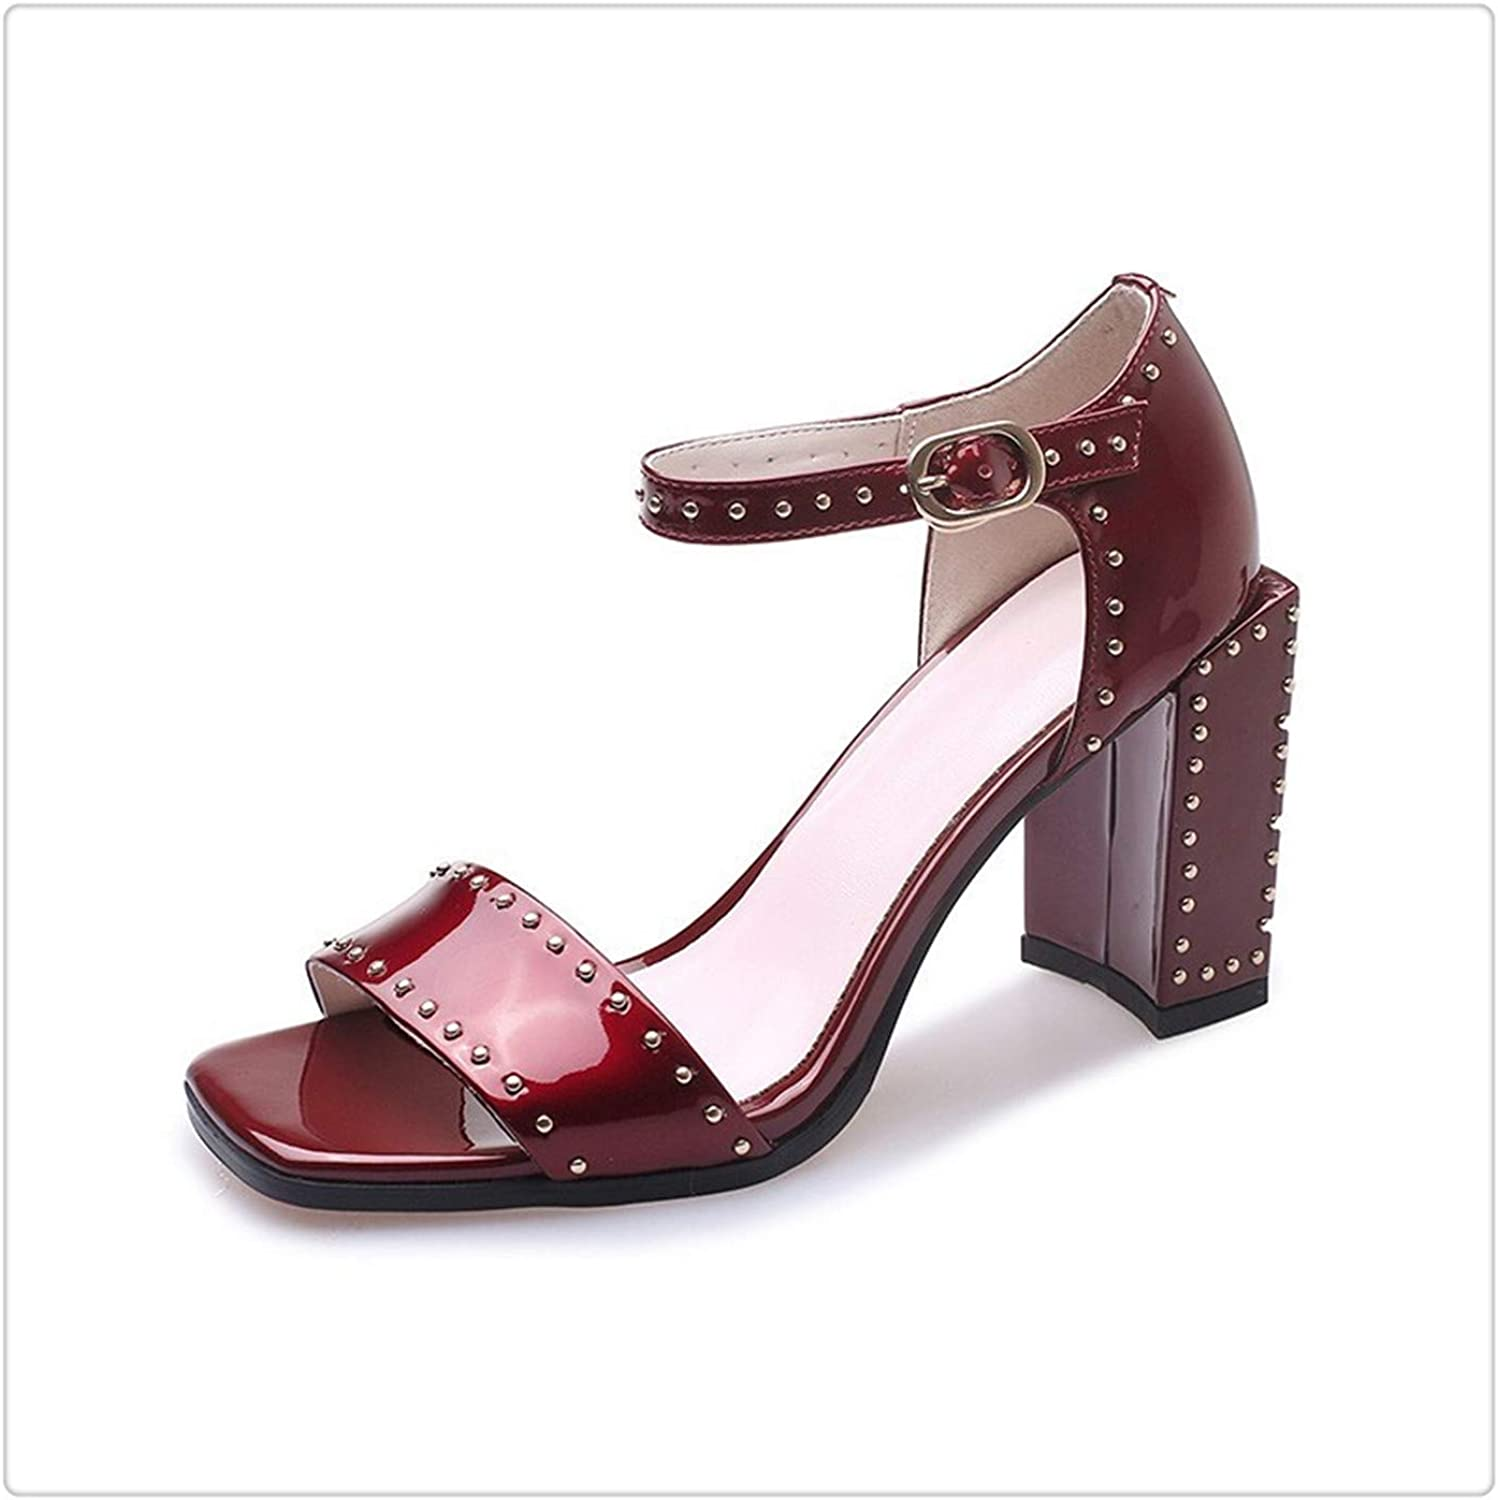 ANGERT& 2019 New Spring Summer Square Toe Pu Leather Buckle Strap Rivet Spliced SimpleHigh Heels Sandals Women Fashion 10SJ713 Wine red 37